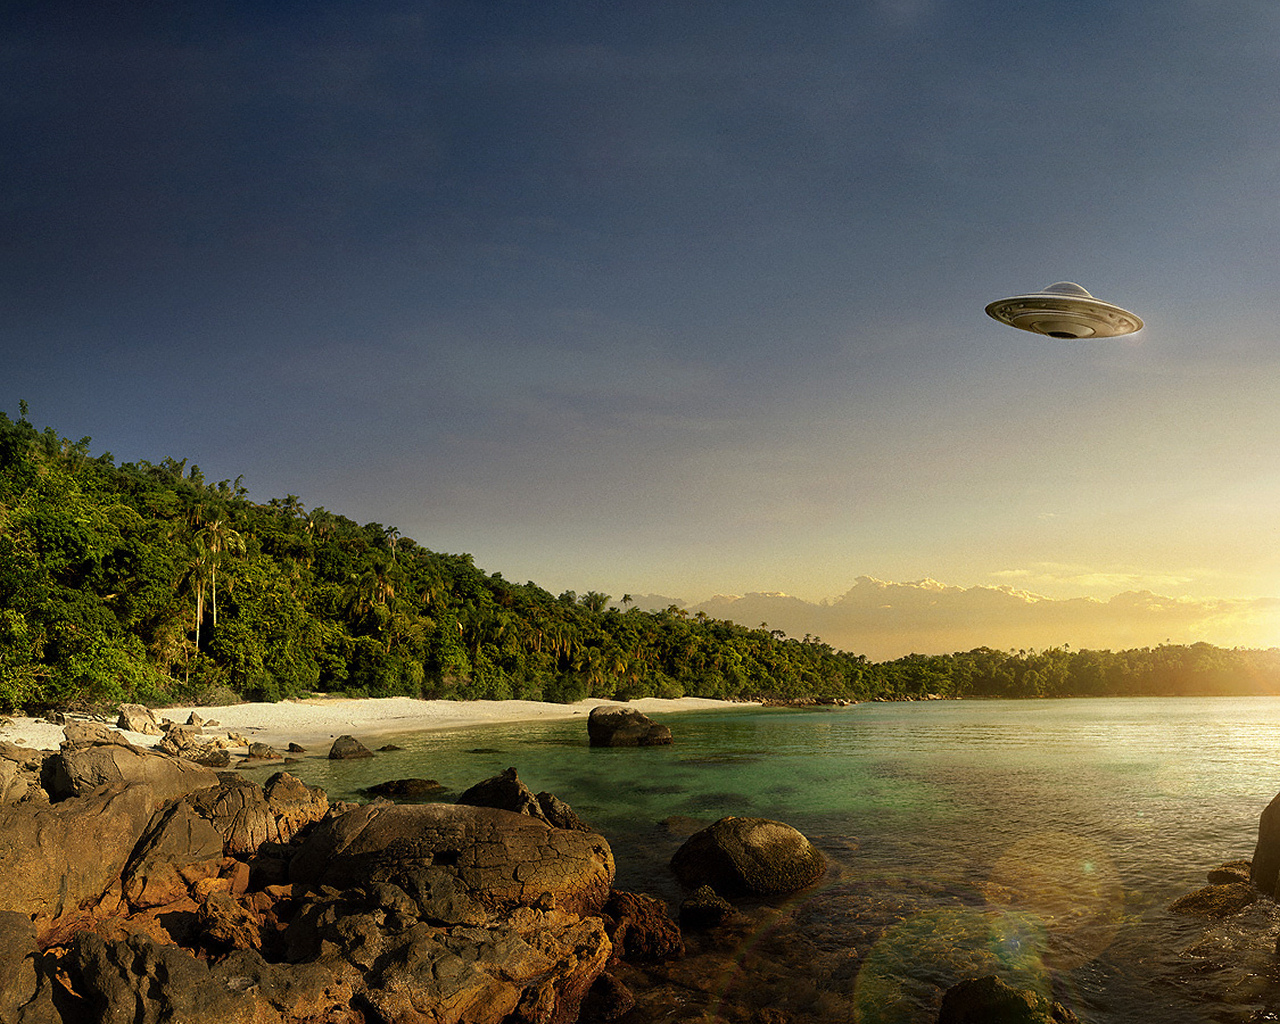 Real Ufo Wallpaper